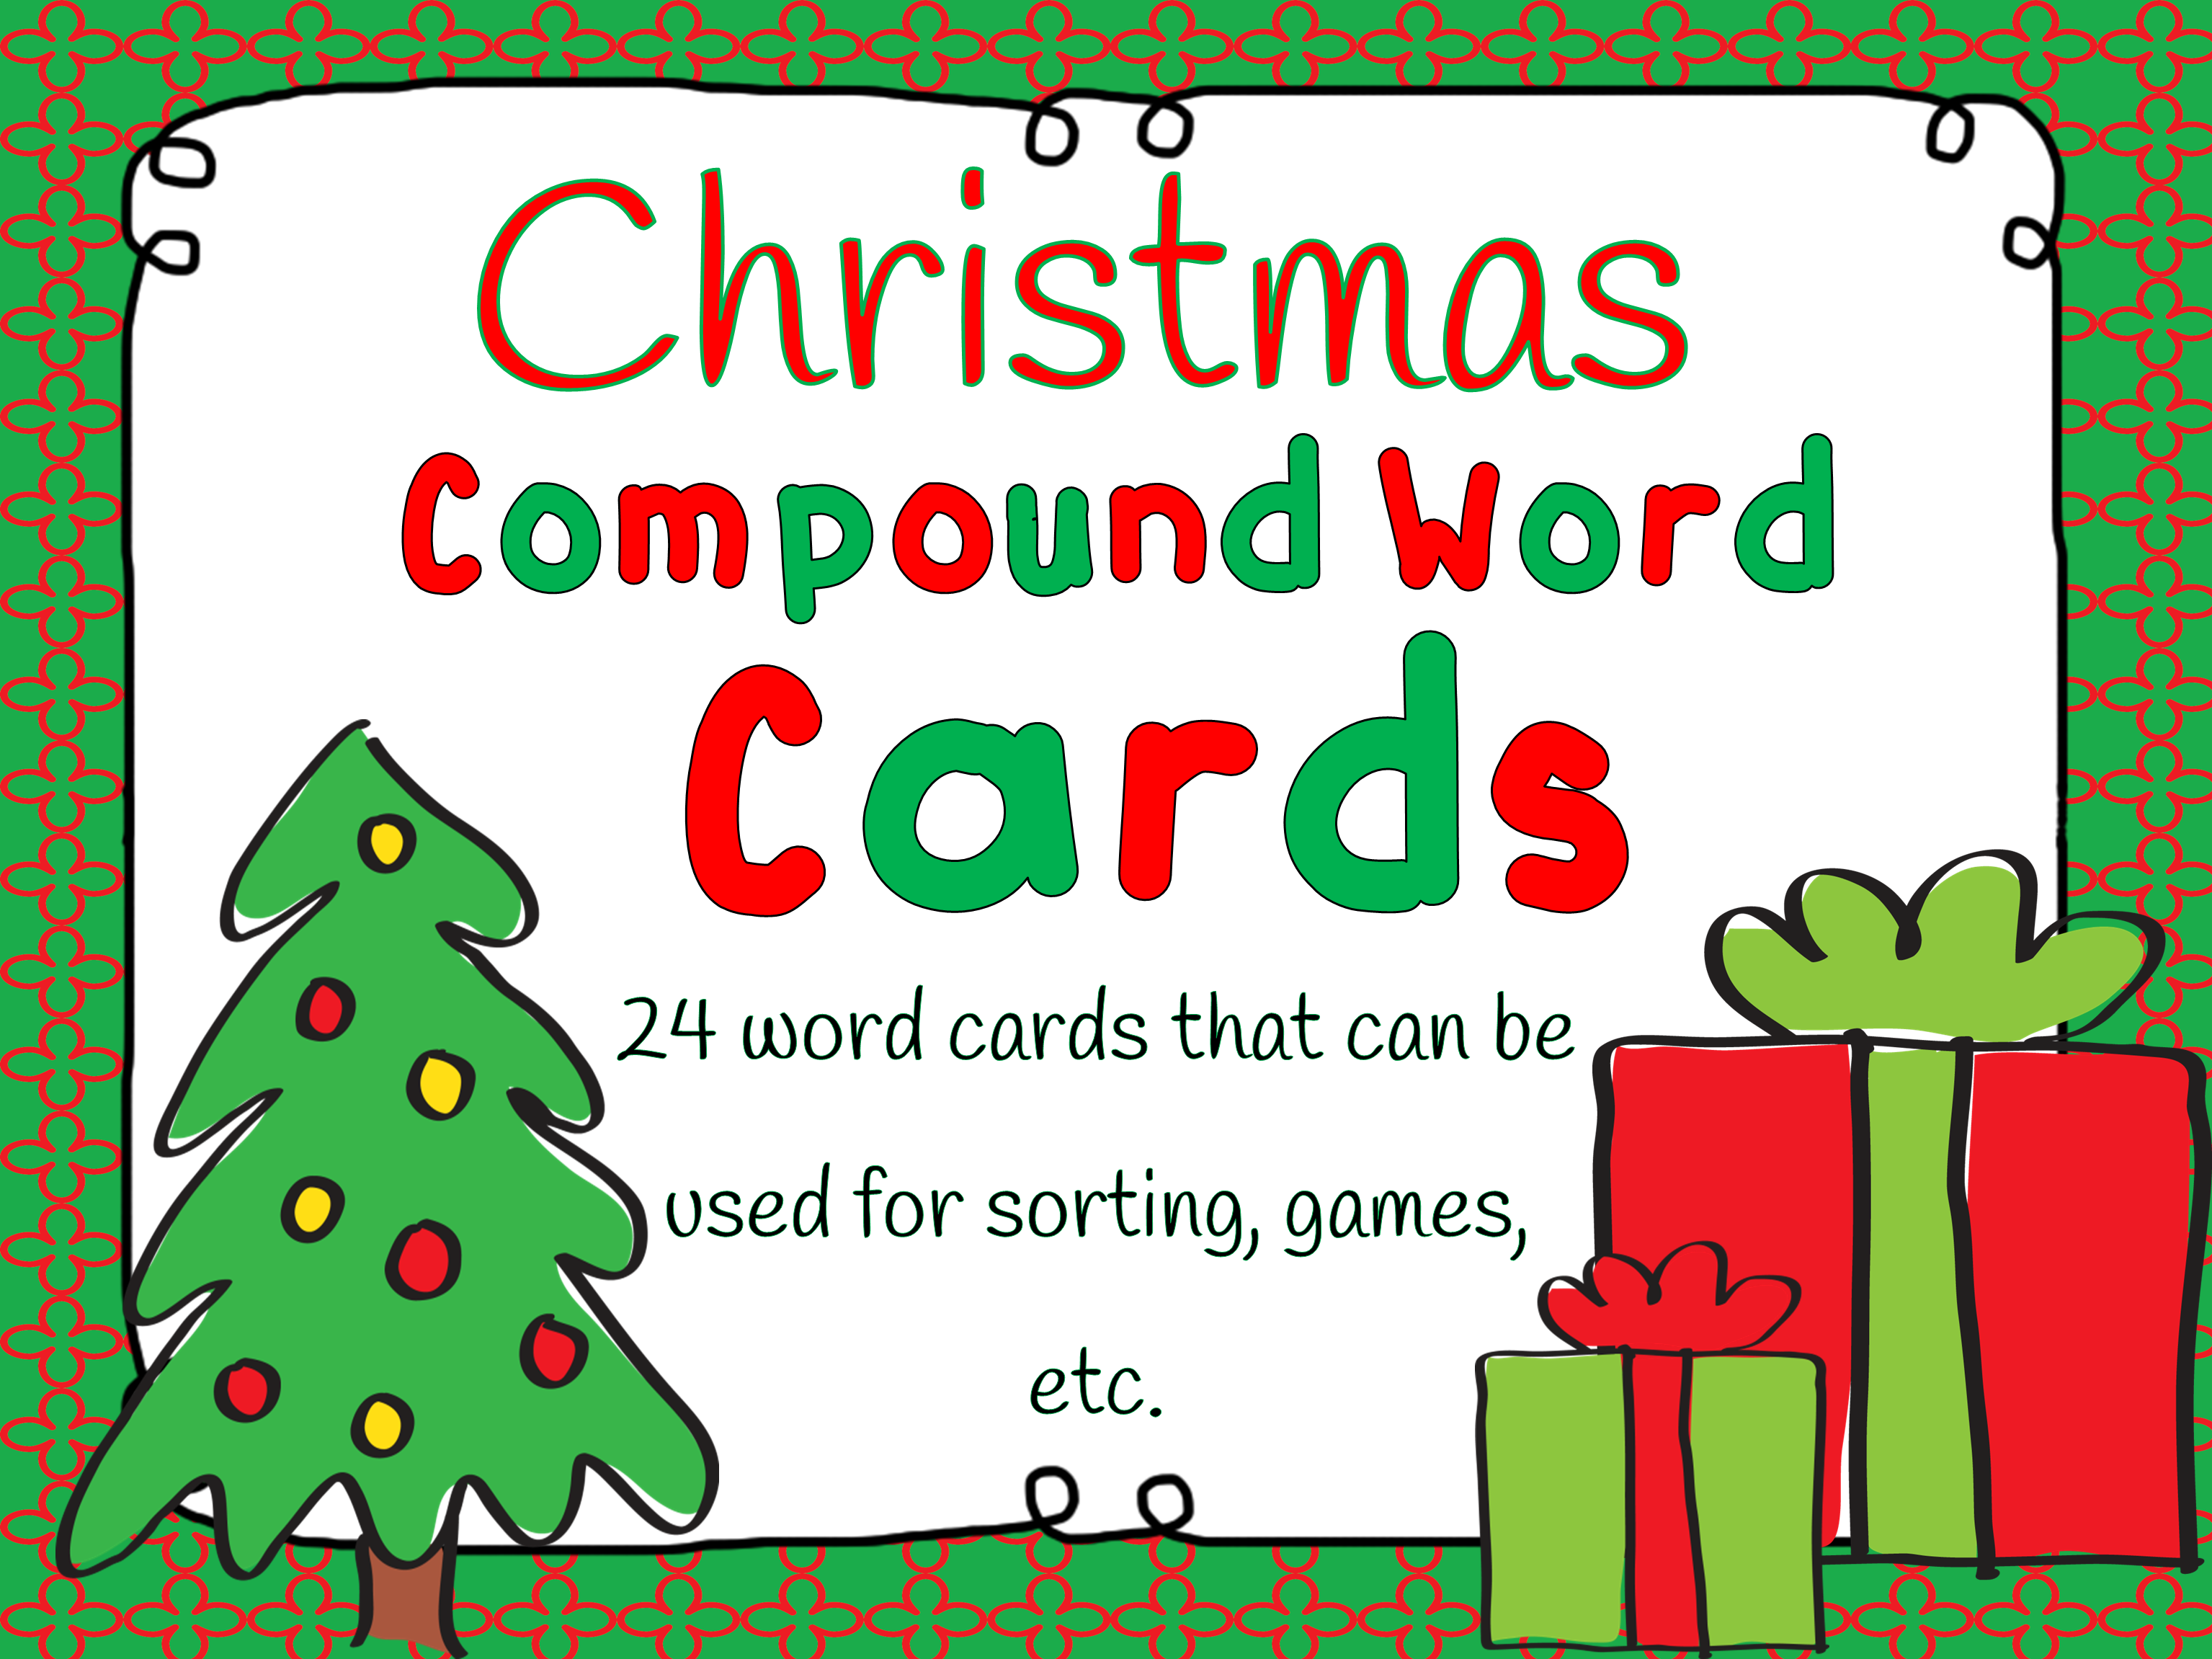 This Christmas Freebie Includes 24 Words Cards That Can Be